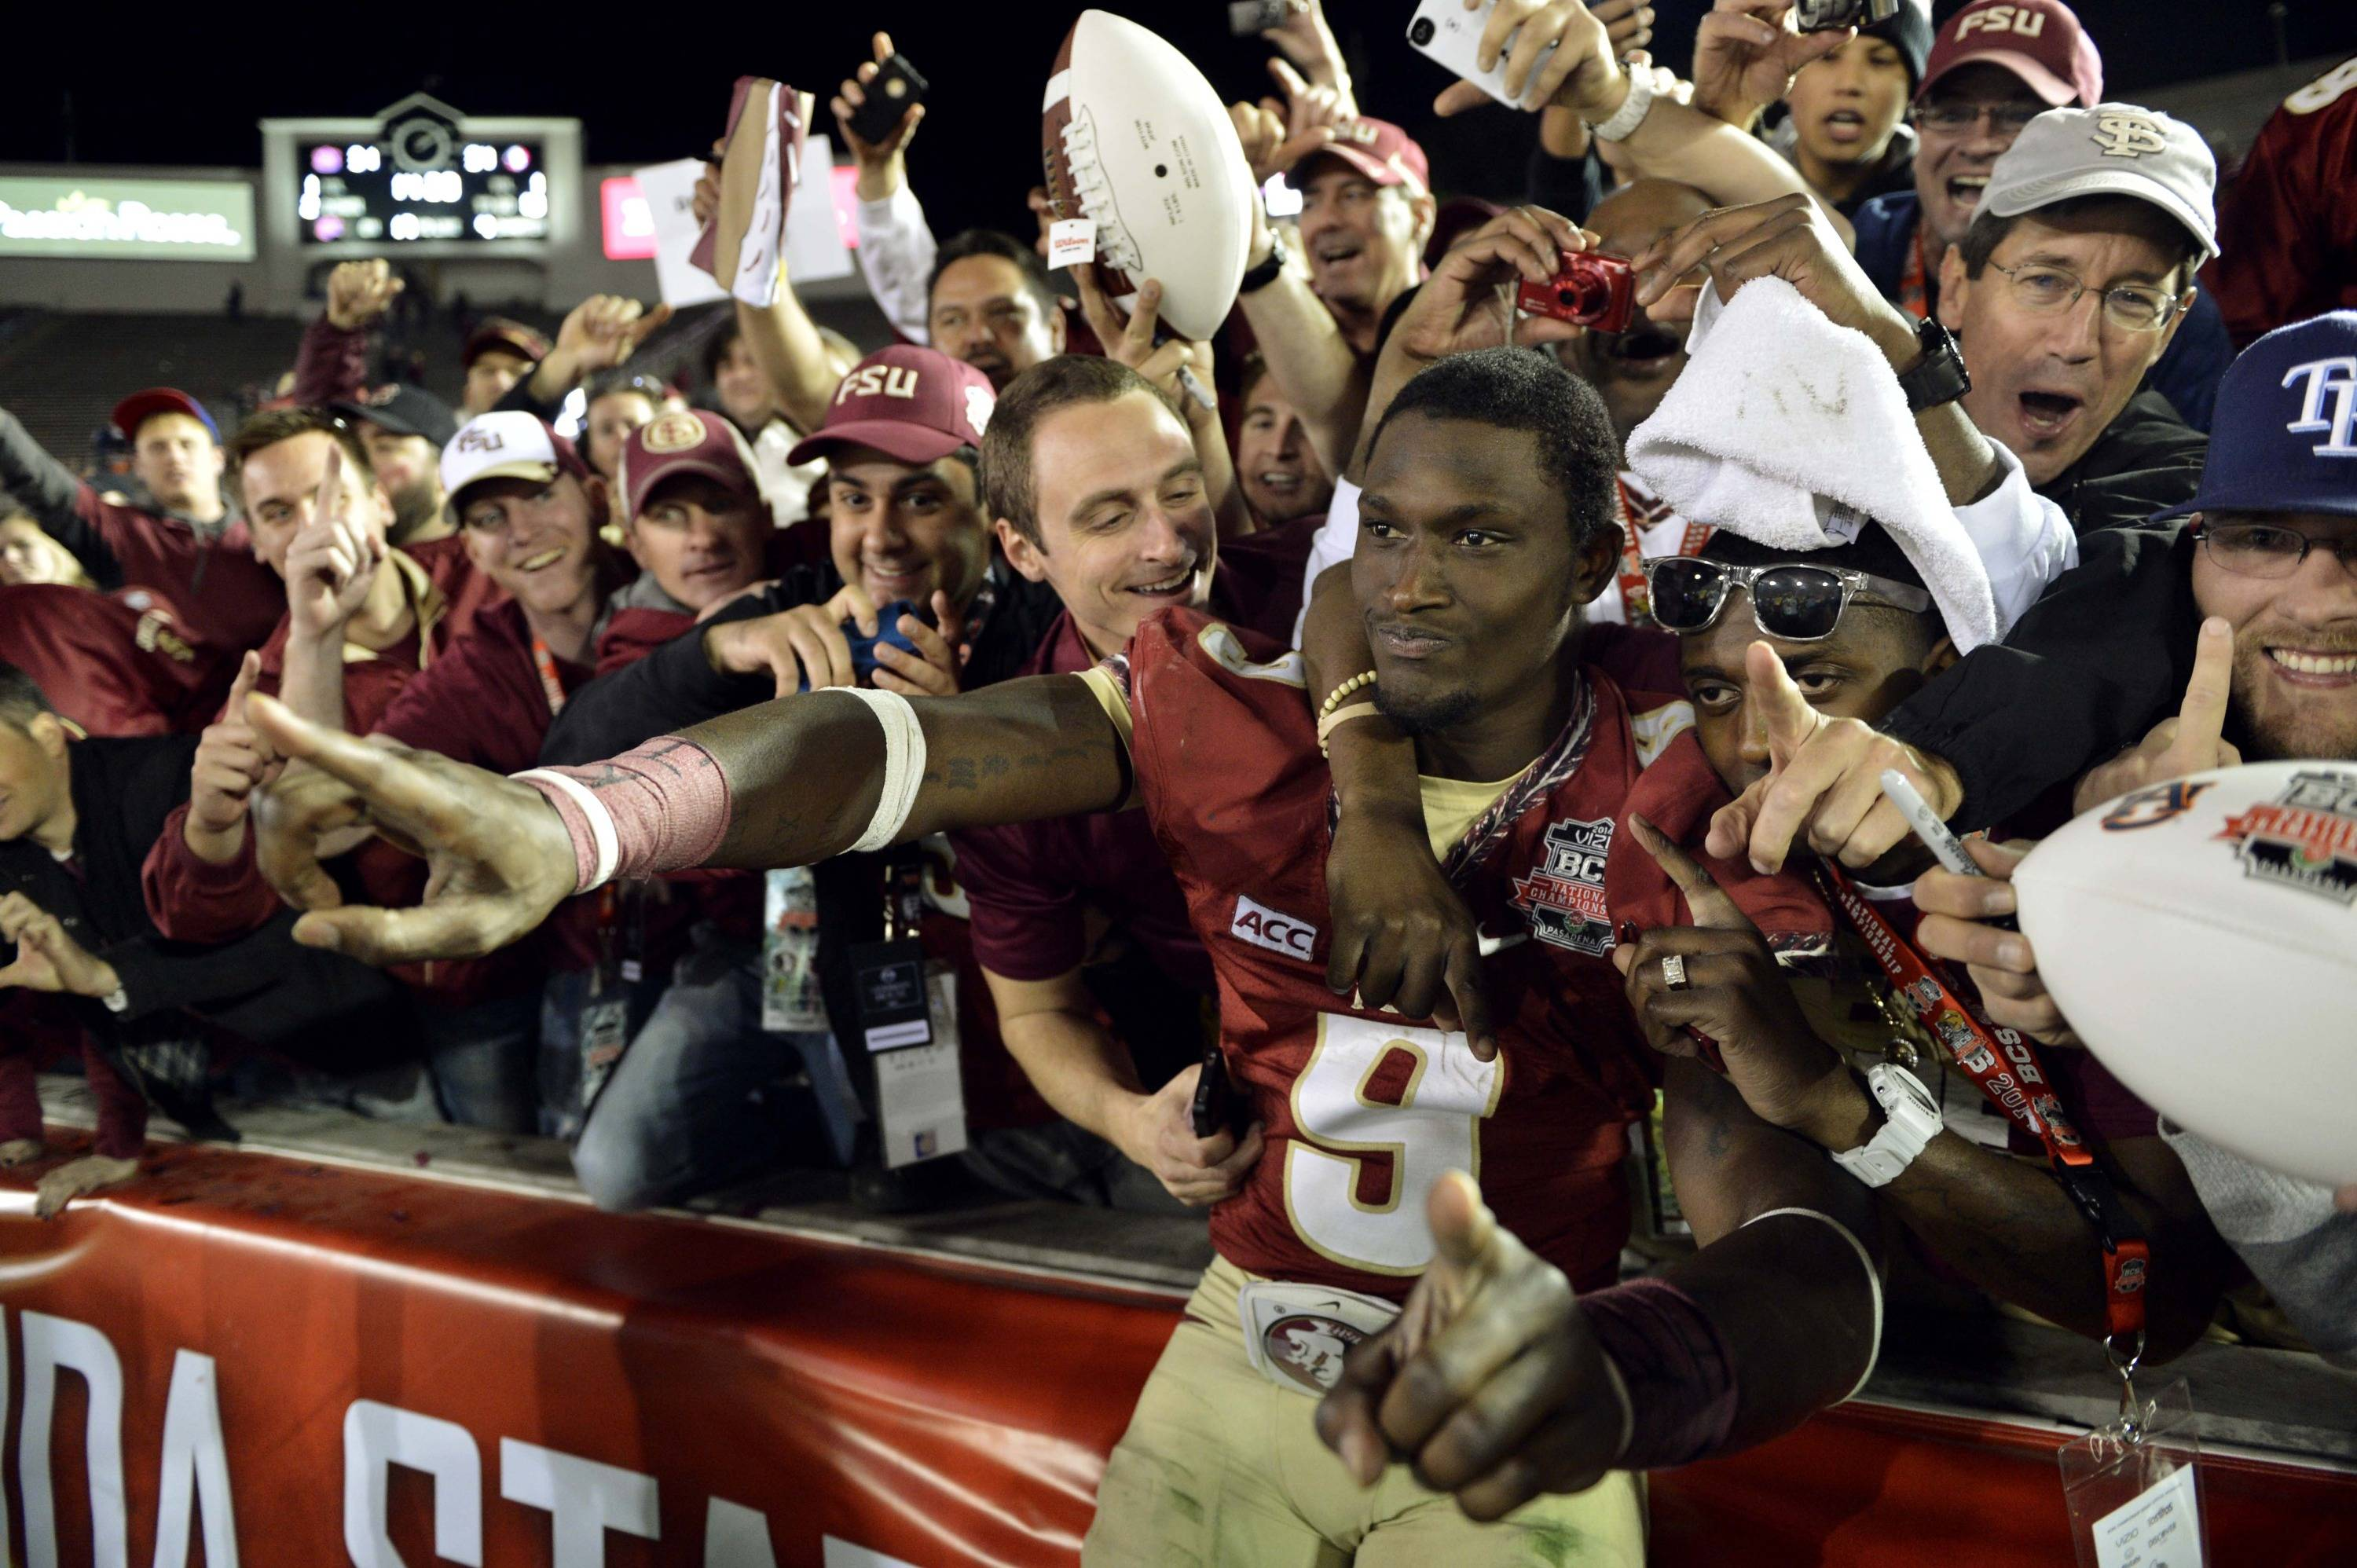 Jan 6, 2014; Pasadena, CA, USA; Florida State Seminoles running back Karlos Williams celebrates with fans in the stands after the 2014 BCS National Championship game against the Auburn Tigers at the Rose Bowl.  Mandatory Credit: Robert Hanashiro-USA TODAY Sports